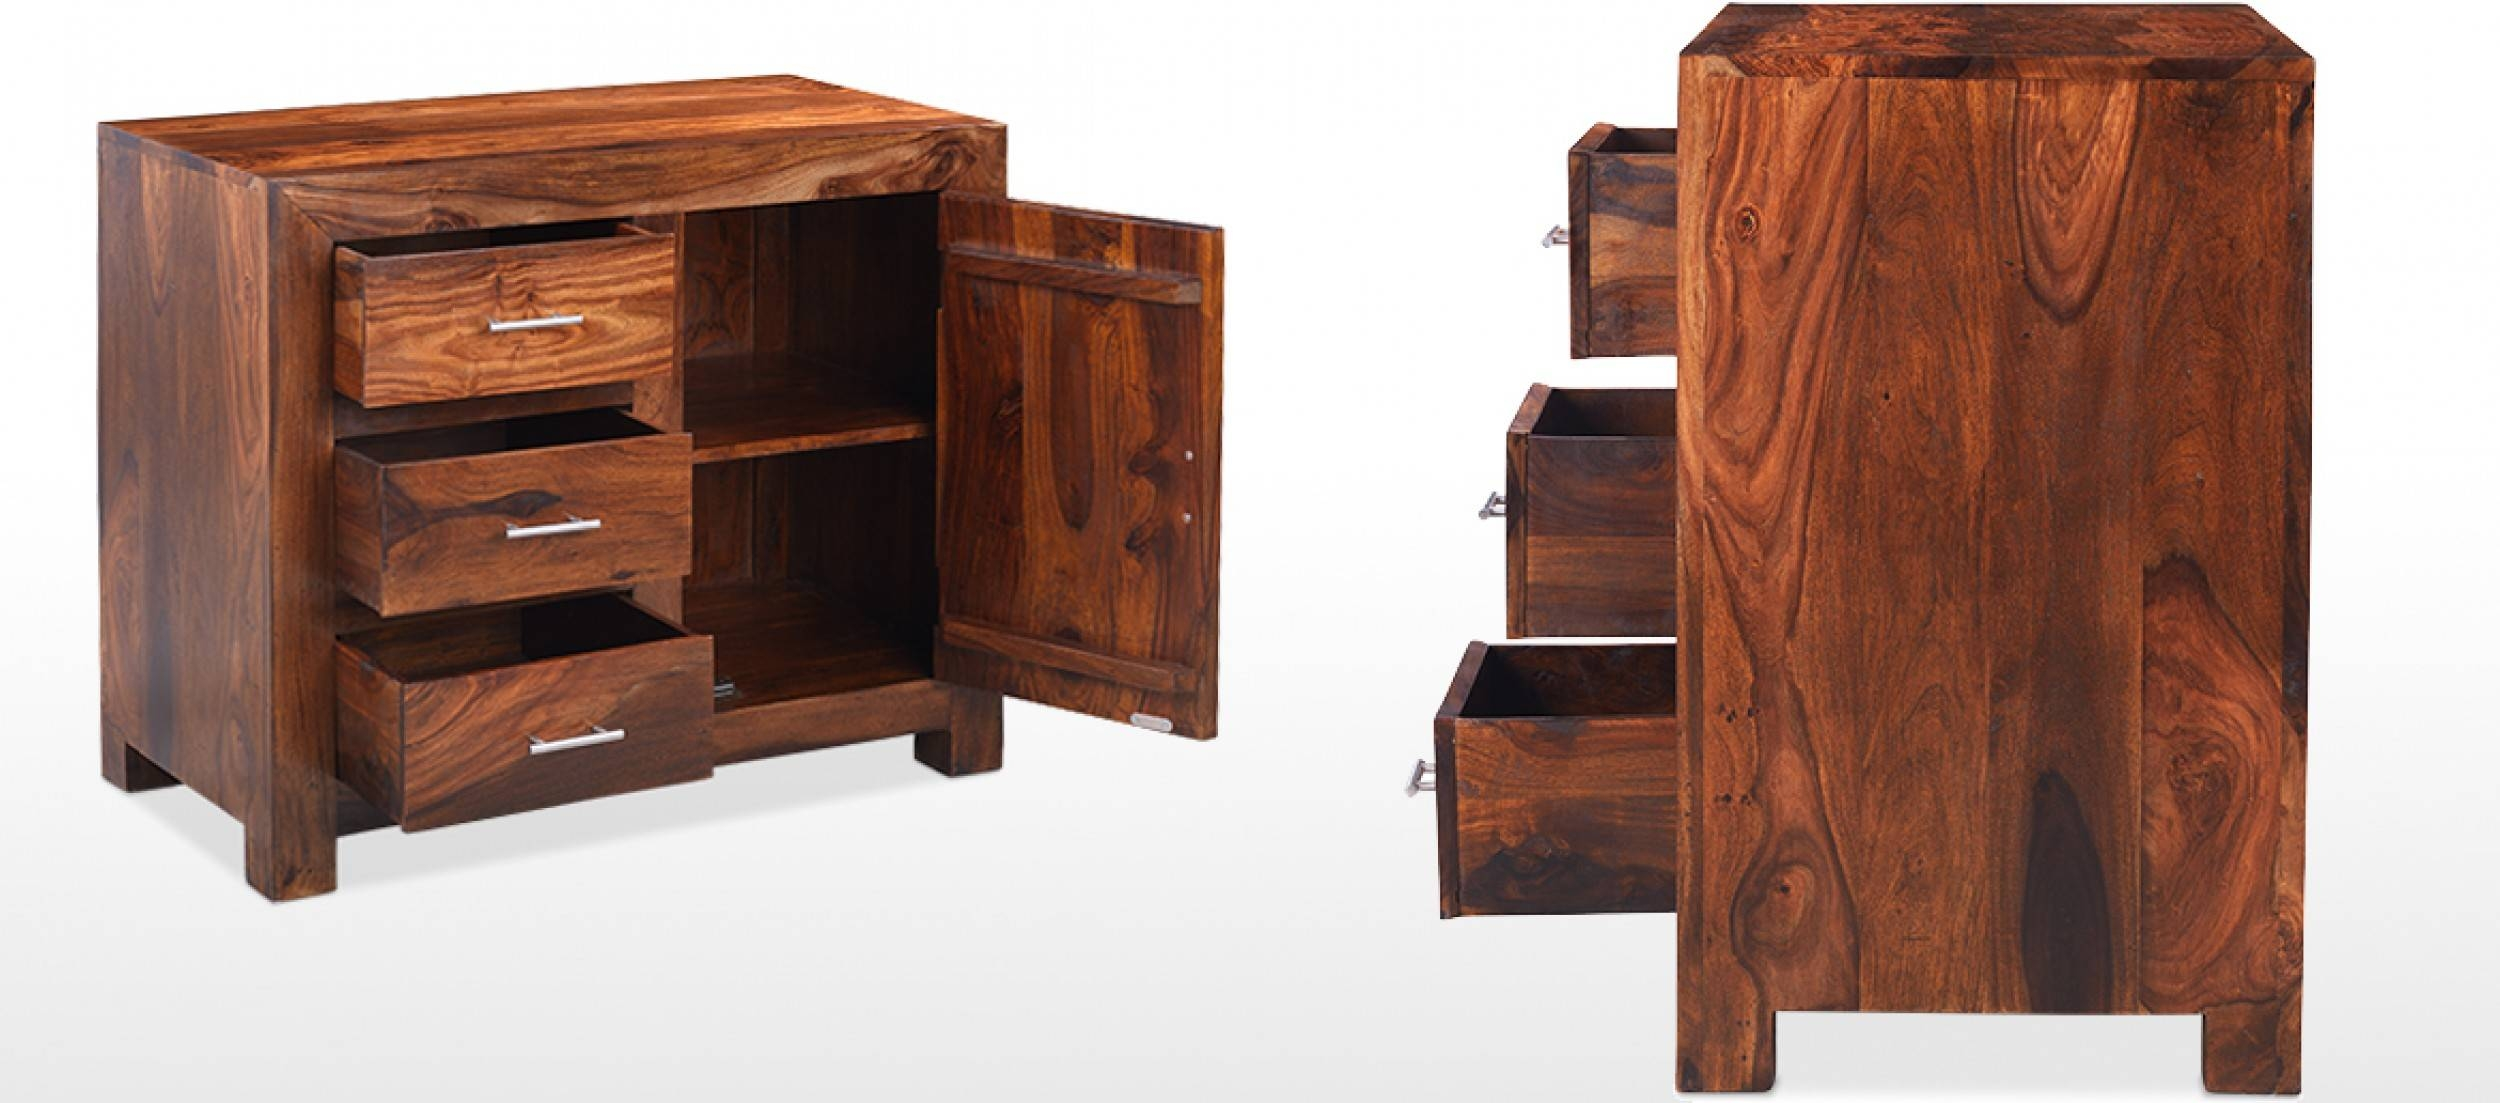 Cube Sheesham Small Sideboard | Quercus Living regarding Sheesham Sideboards (Image 5 of 30)